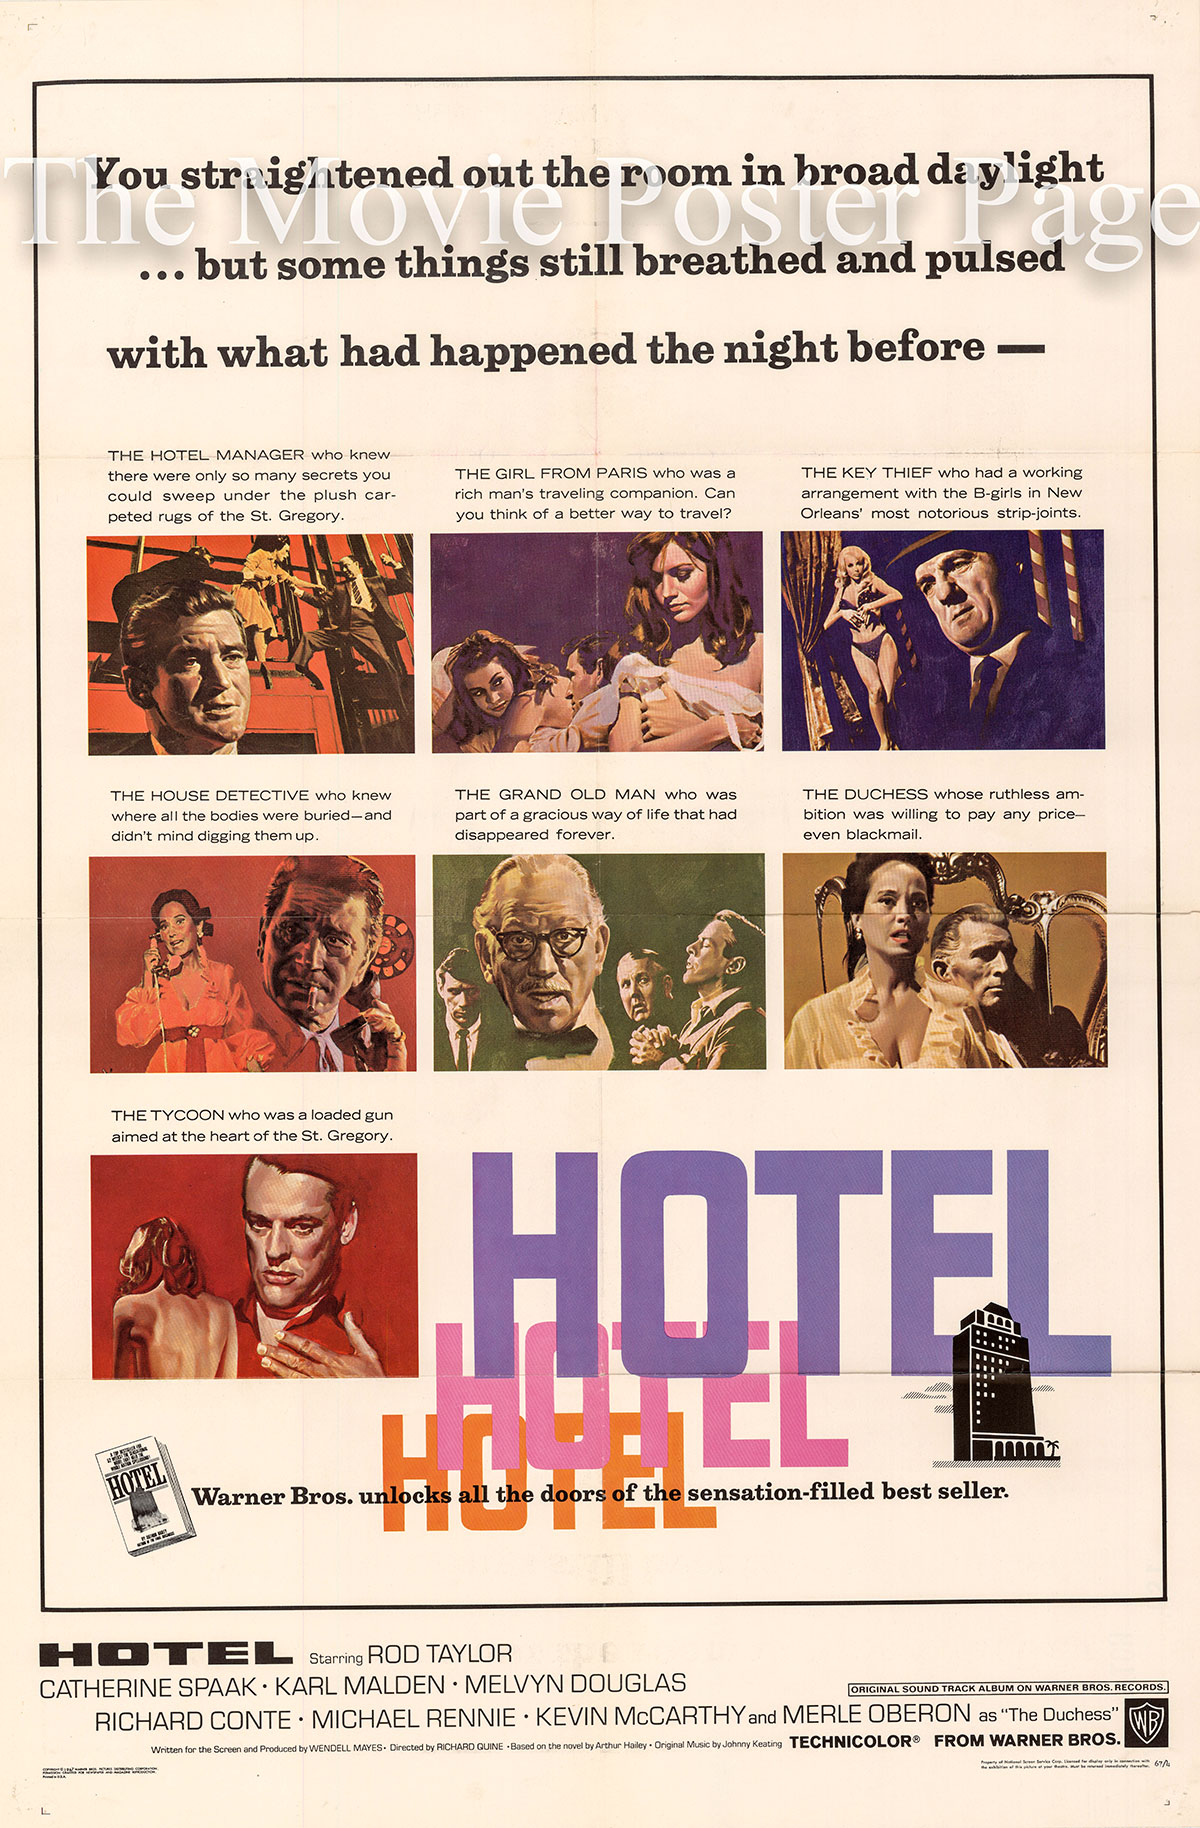 Pictured is a US one-sheet poster for the 1967 Richard Quine film Hotel starring Rod Taylor.